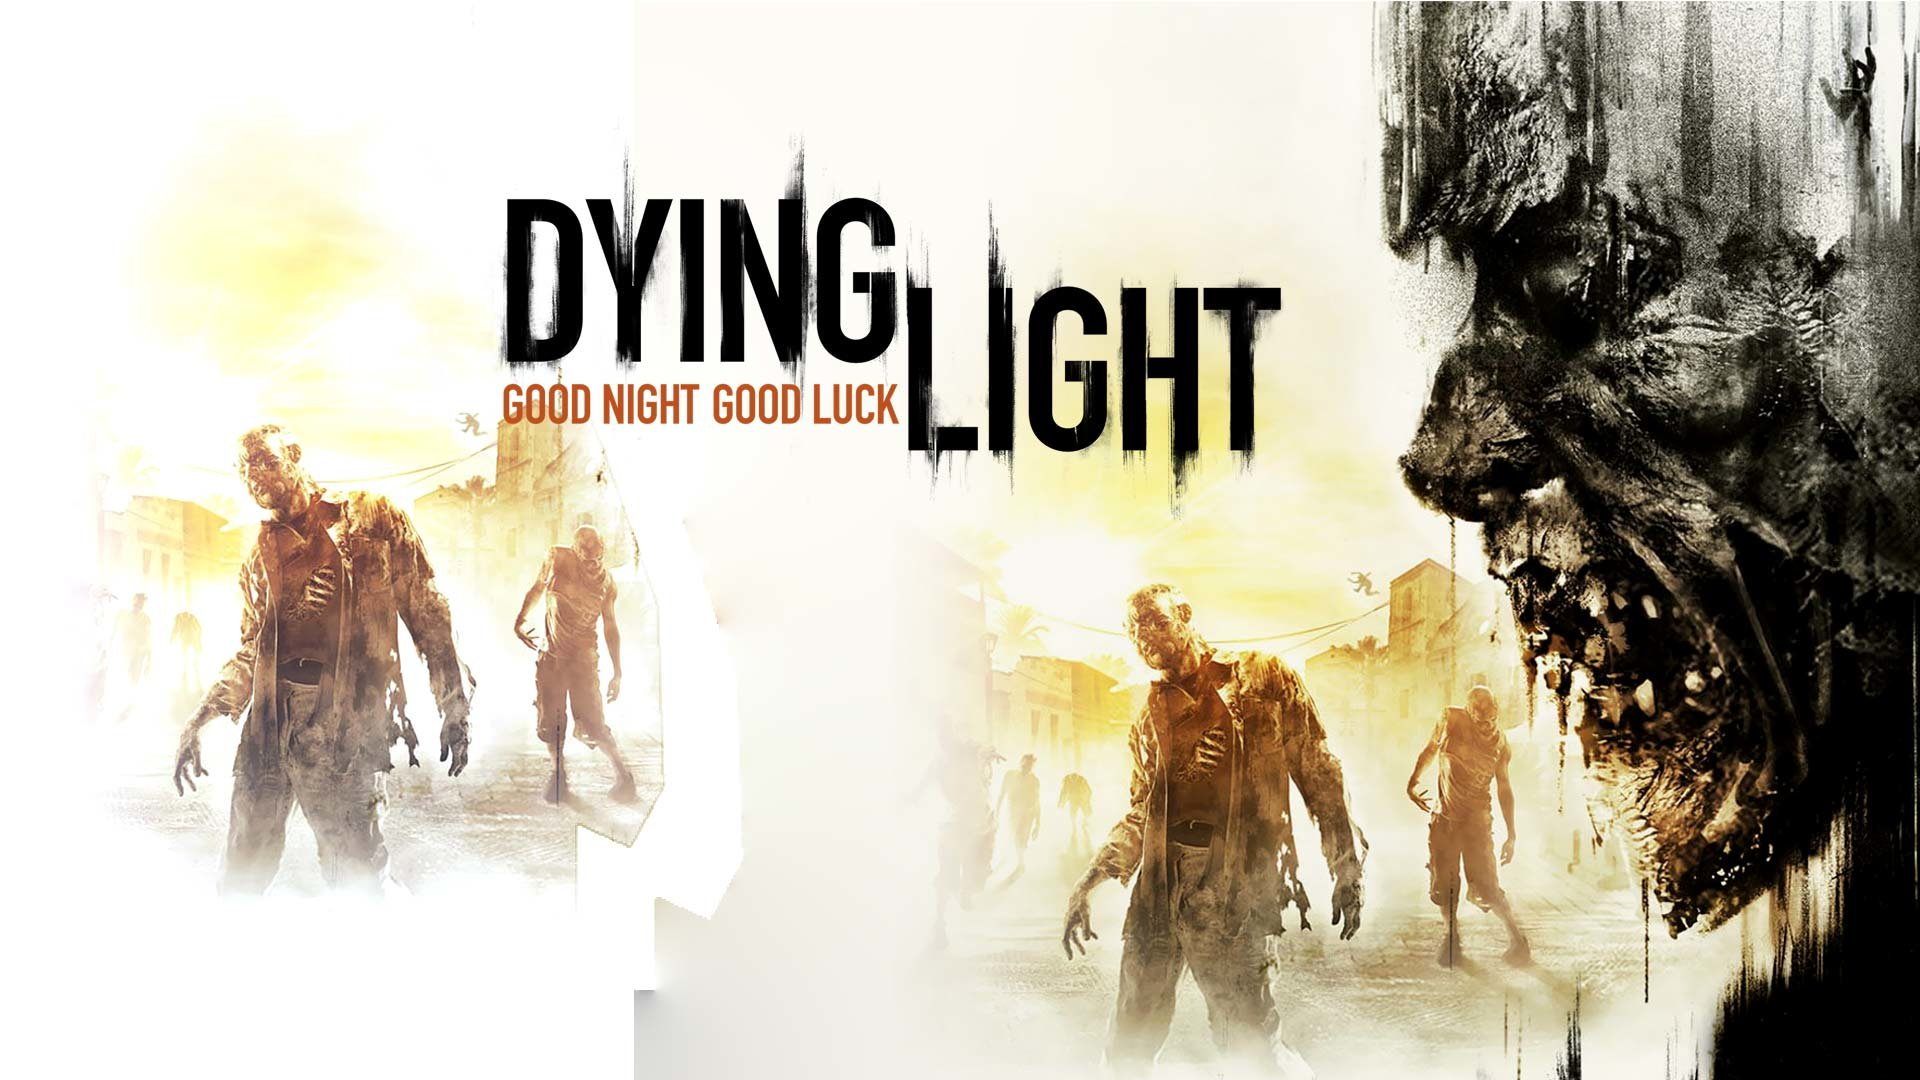 Dying Light Wallpapers Hd For Desktop Backgrounds